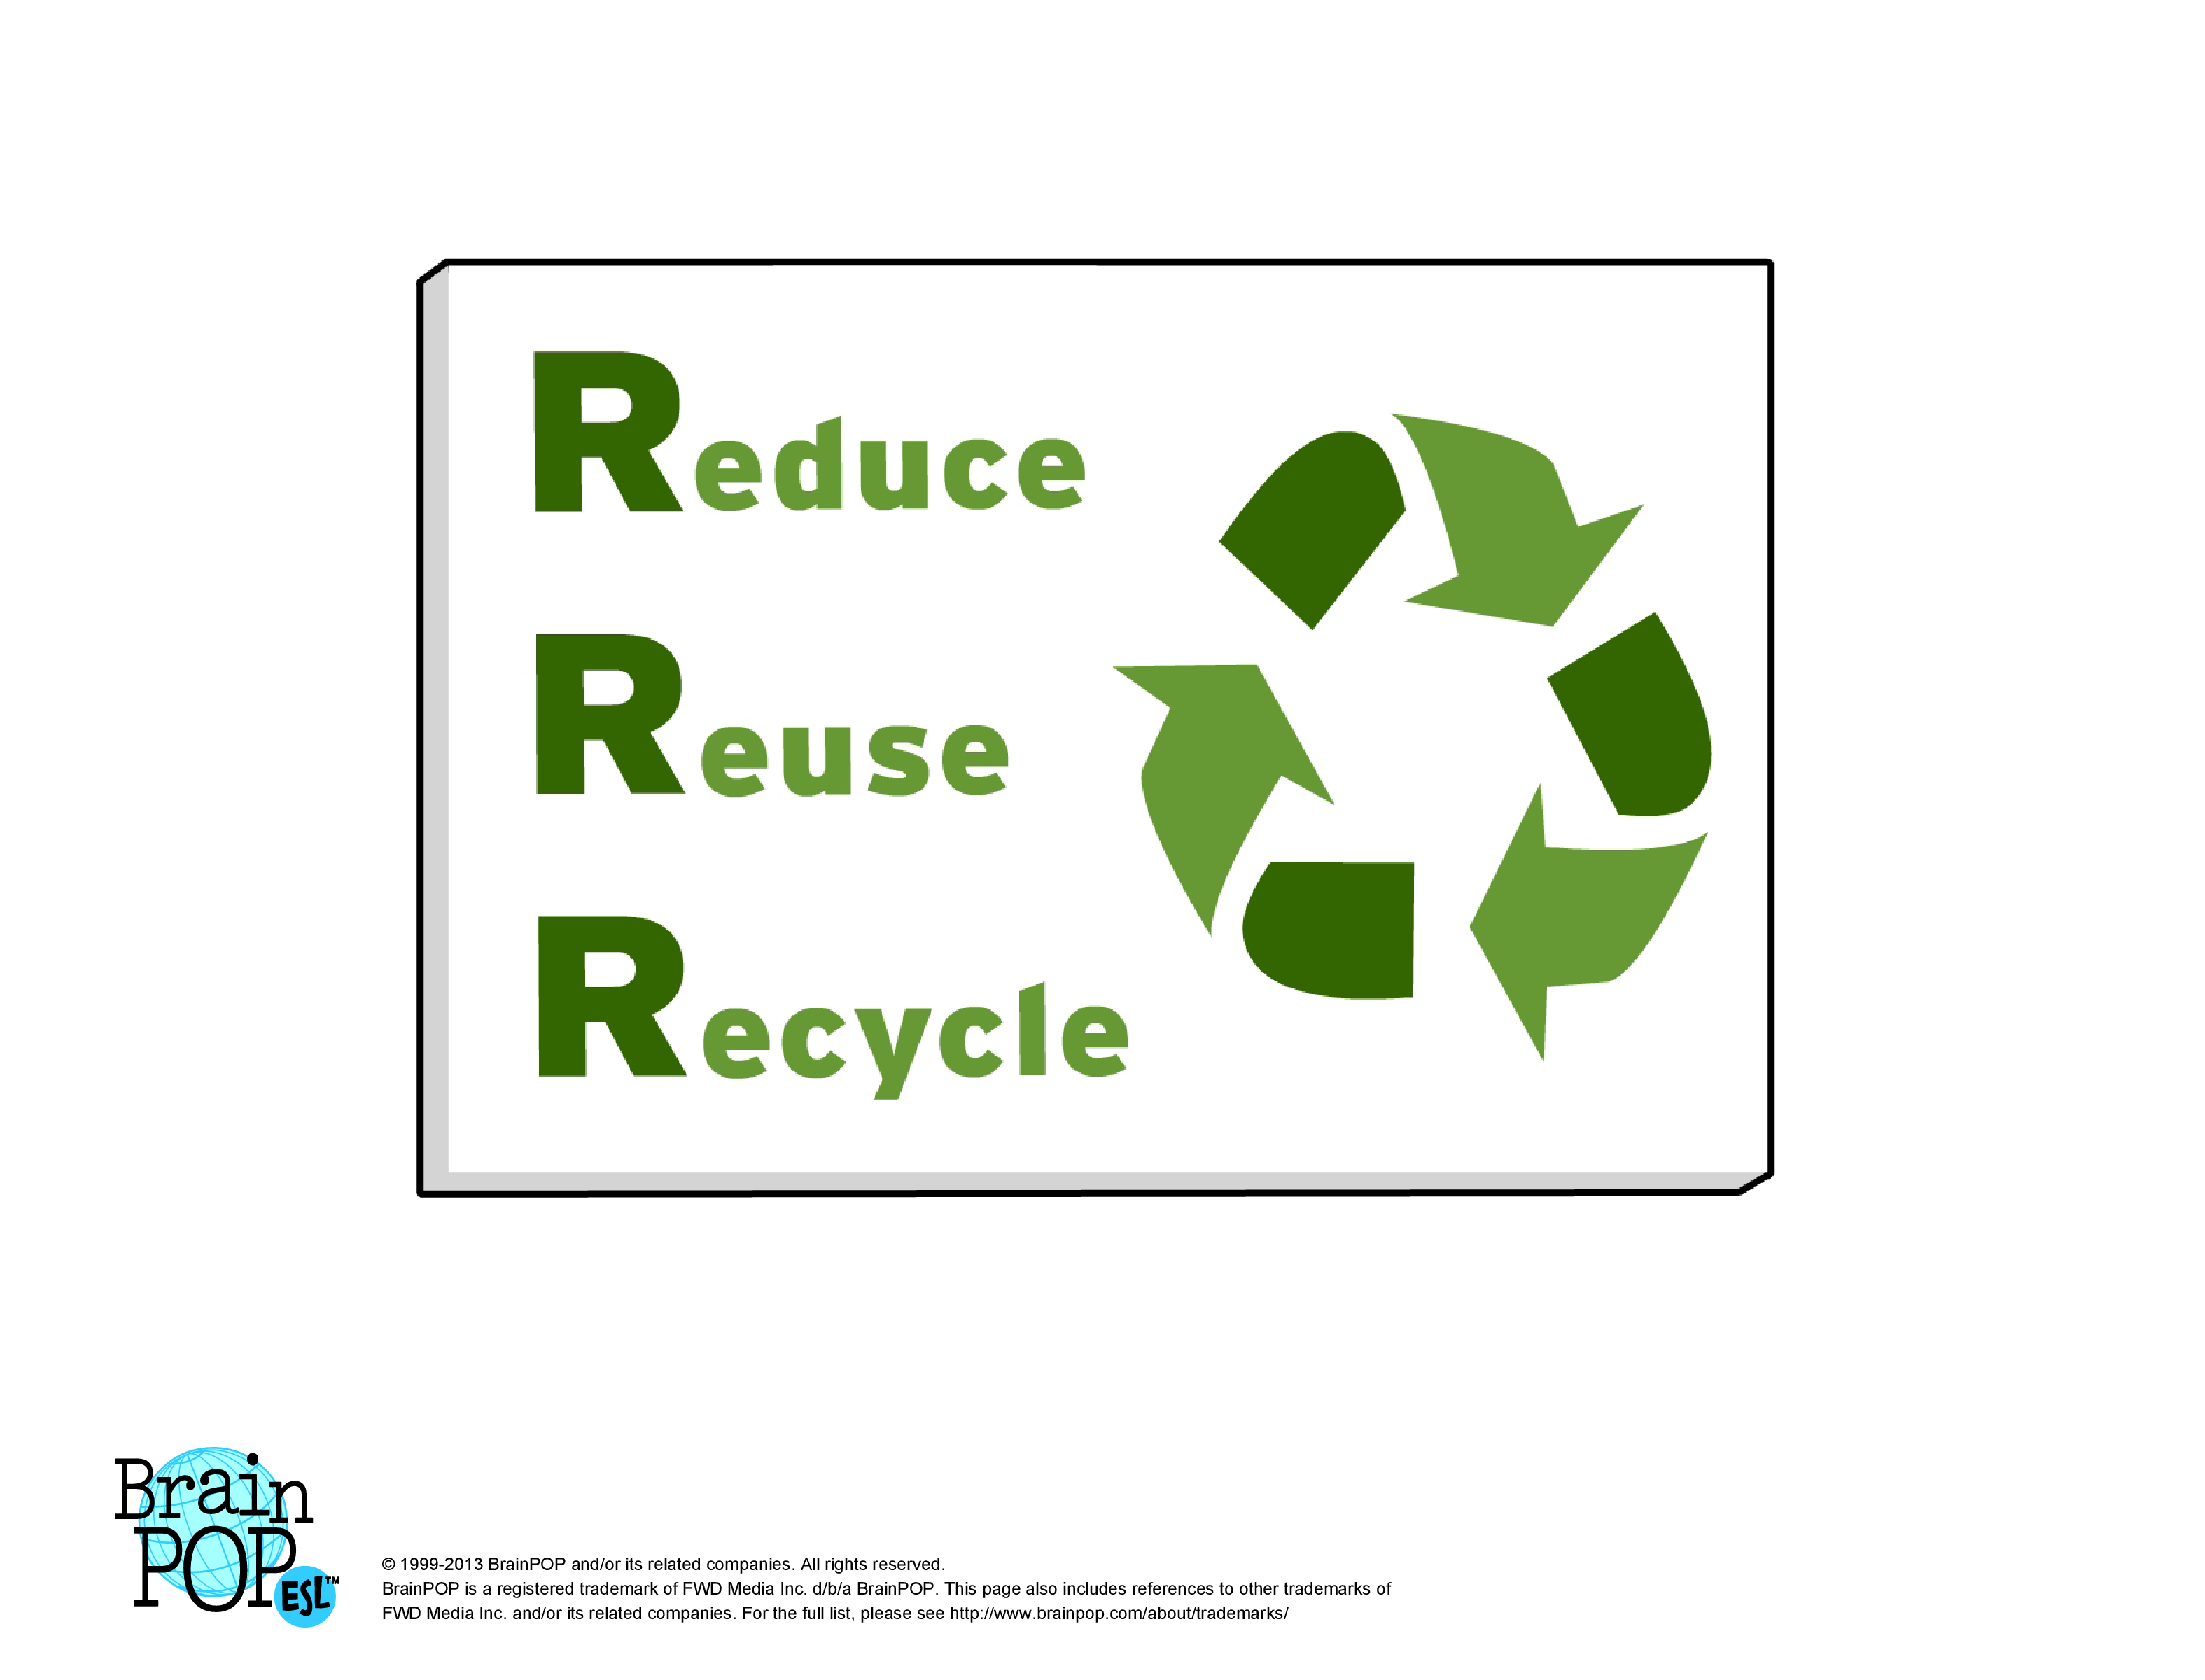 reduce reuse recycle earth png transparent reduce reuse recycle  reduce reuse recycle earth png com 3150 reduce reuse recycle earth